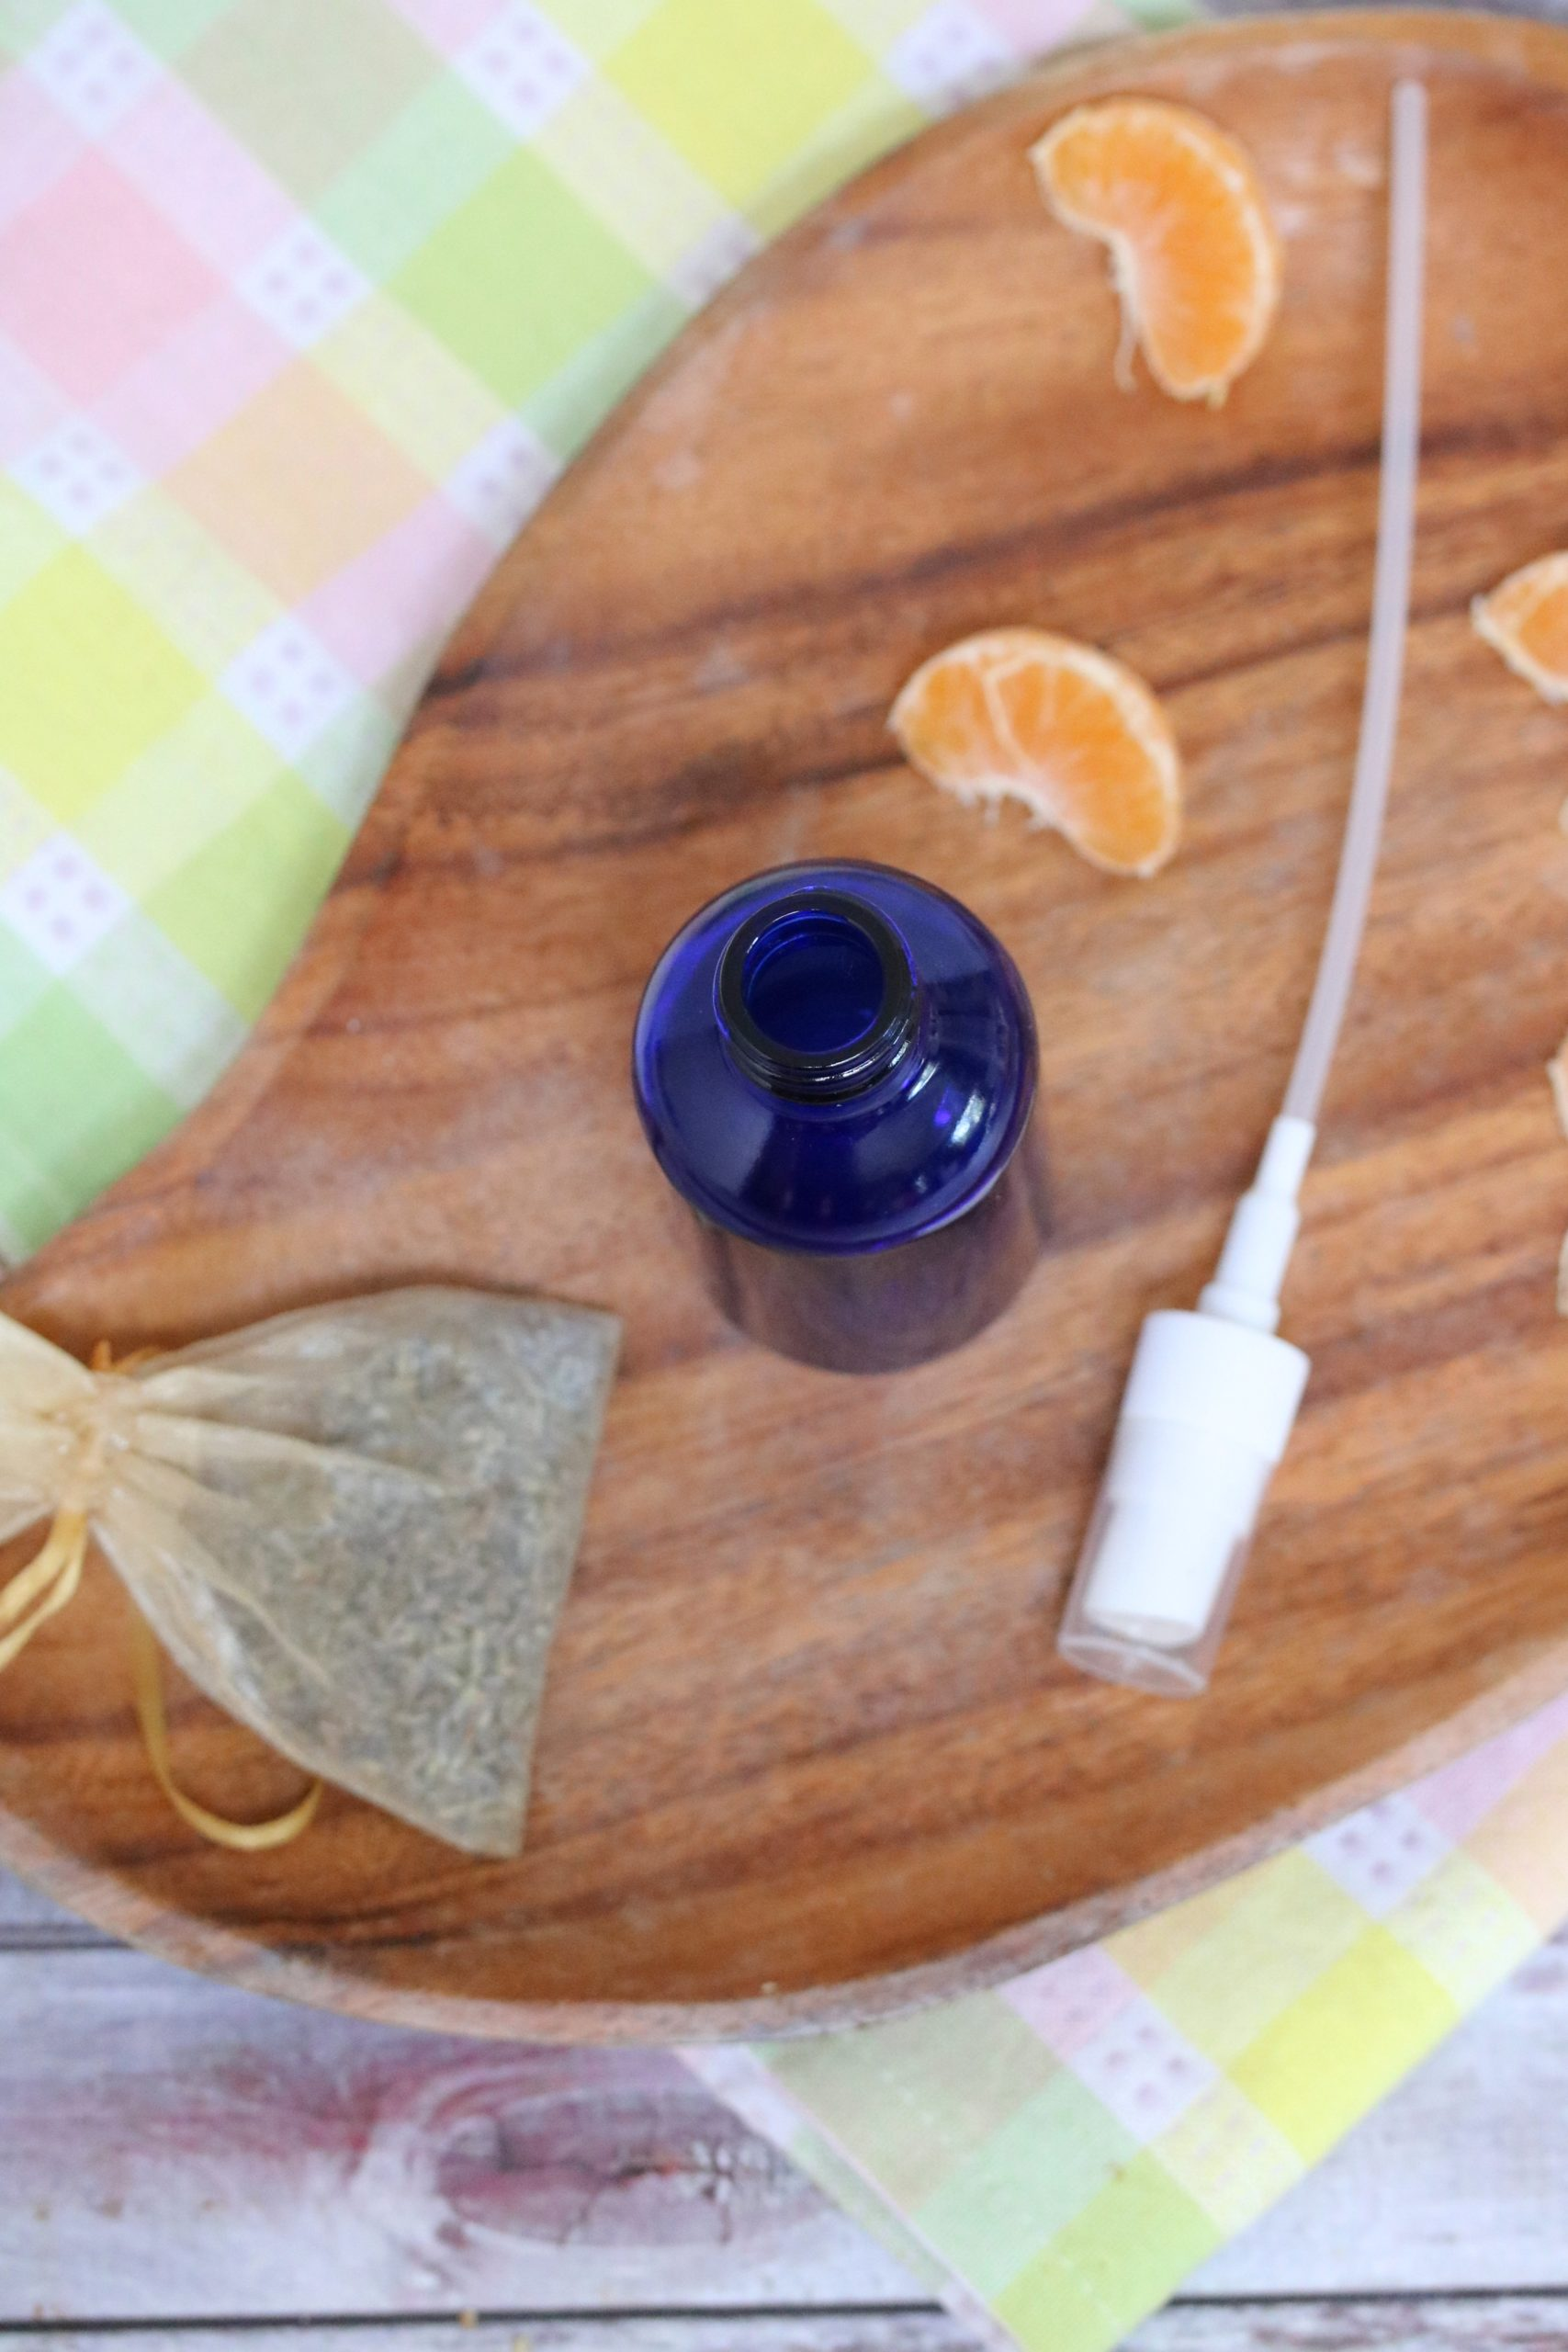 Blue glass bottle on a wooden cutting board on top of a colored linen with spray nozzle beside it. Orange slices and a bag of lavender around beside the spray bottle.